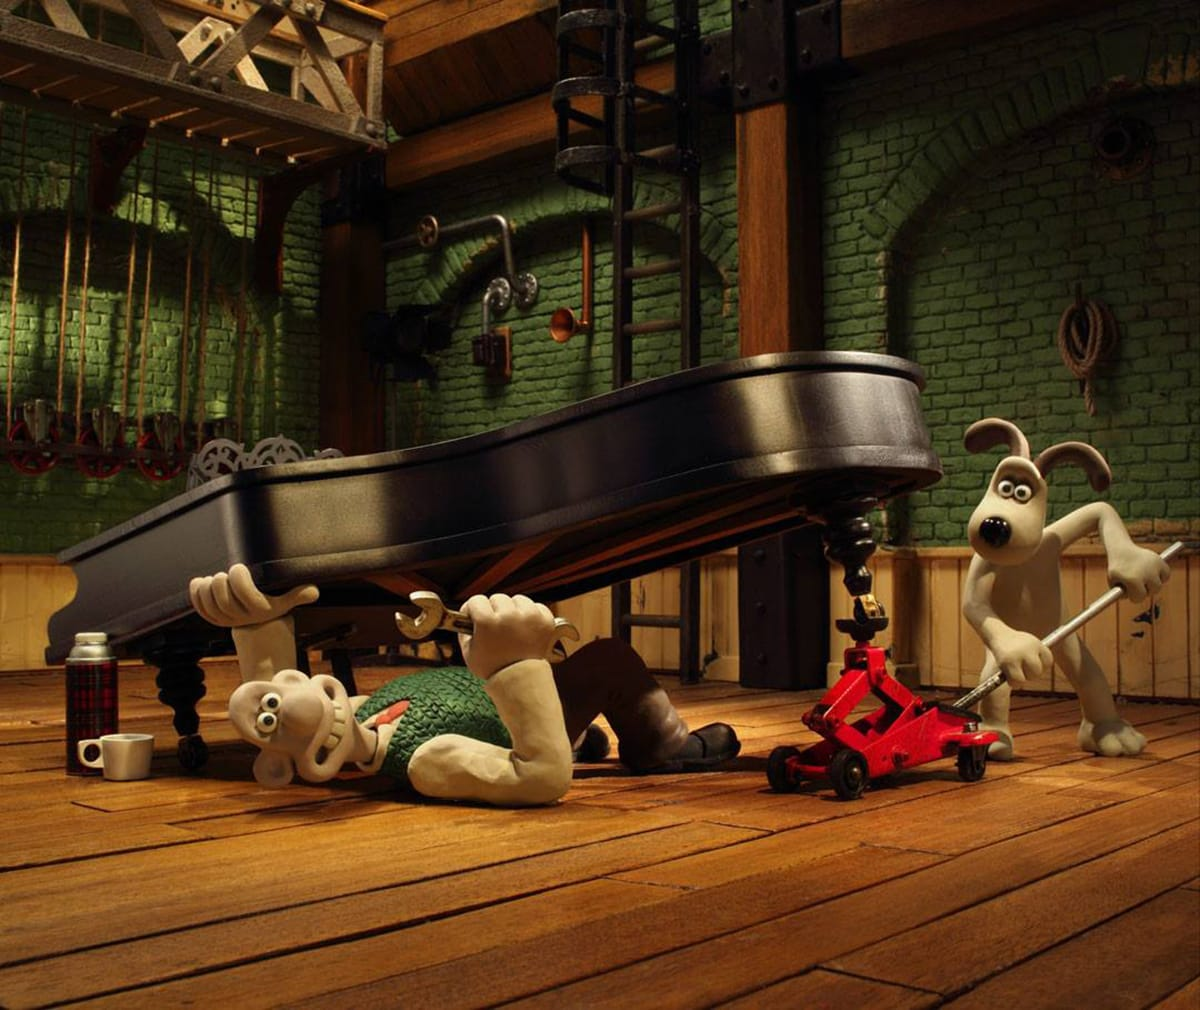 Wallace & Gromit Production Shot